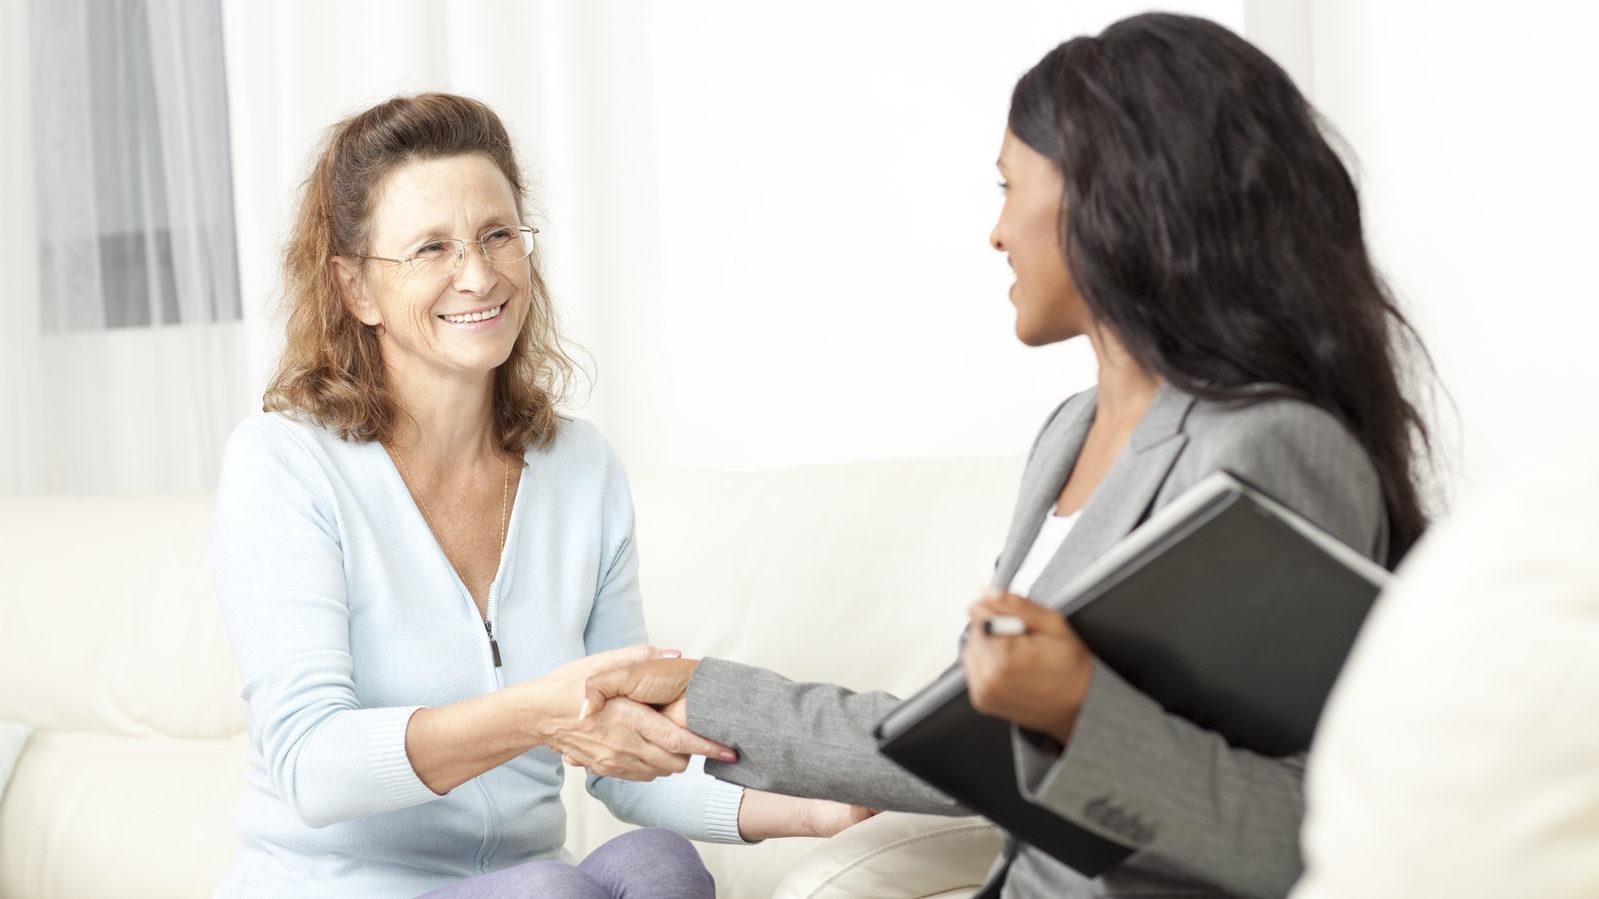 Social security lawyer consults a client in her home